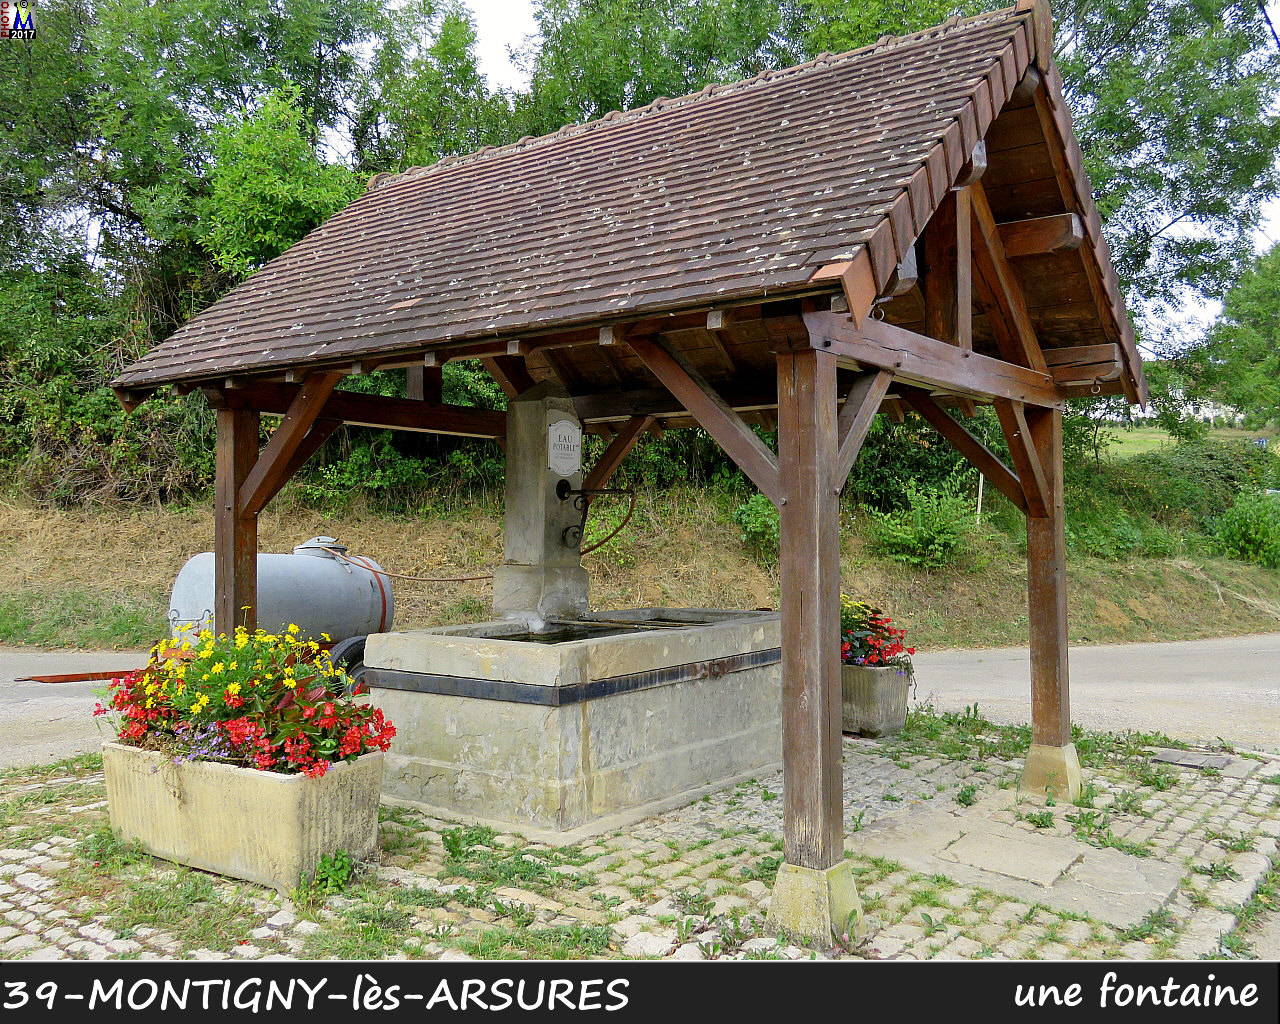 39MONTIGNY-les-ARSURES_fontaine_120.jpg